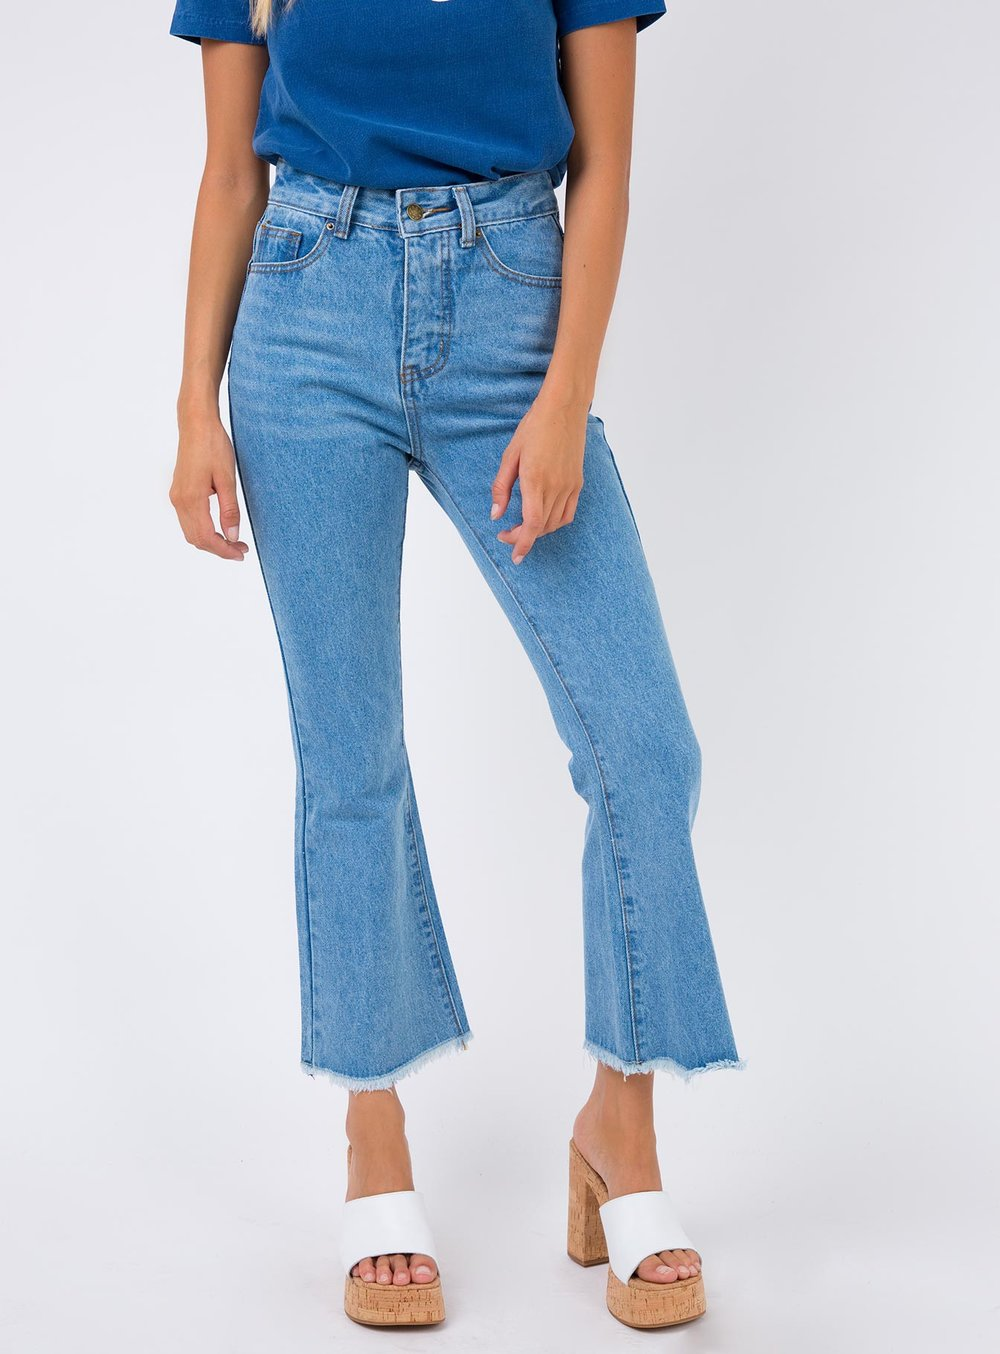 THE SAGE JEANS